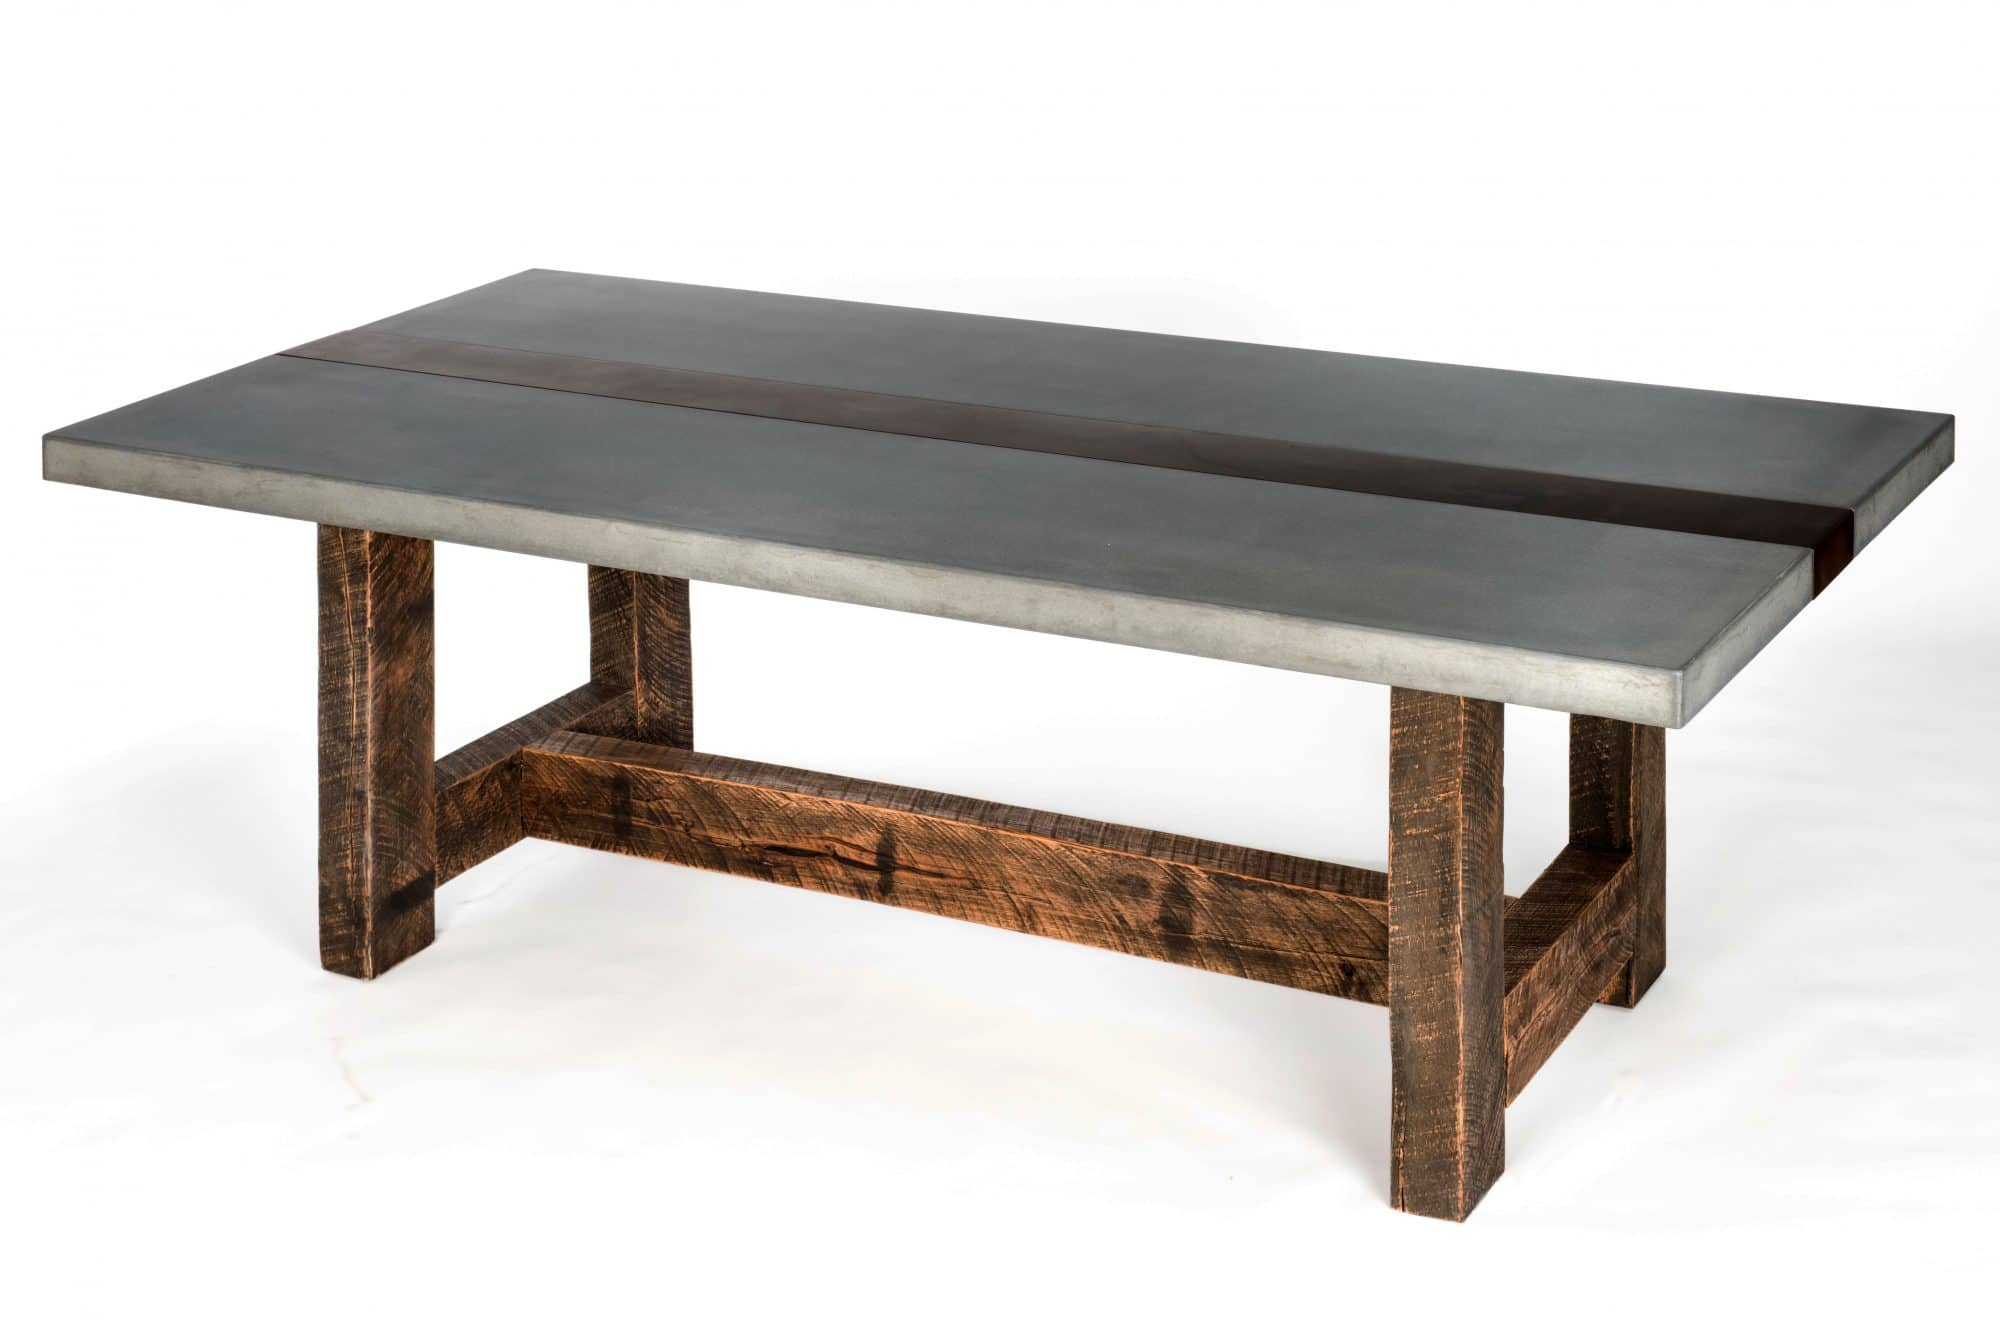 Reclaimed Table Base. C P 124_edited 1